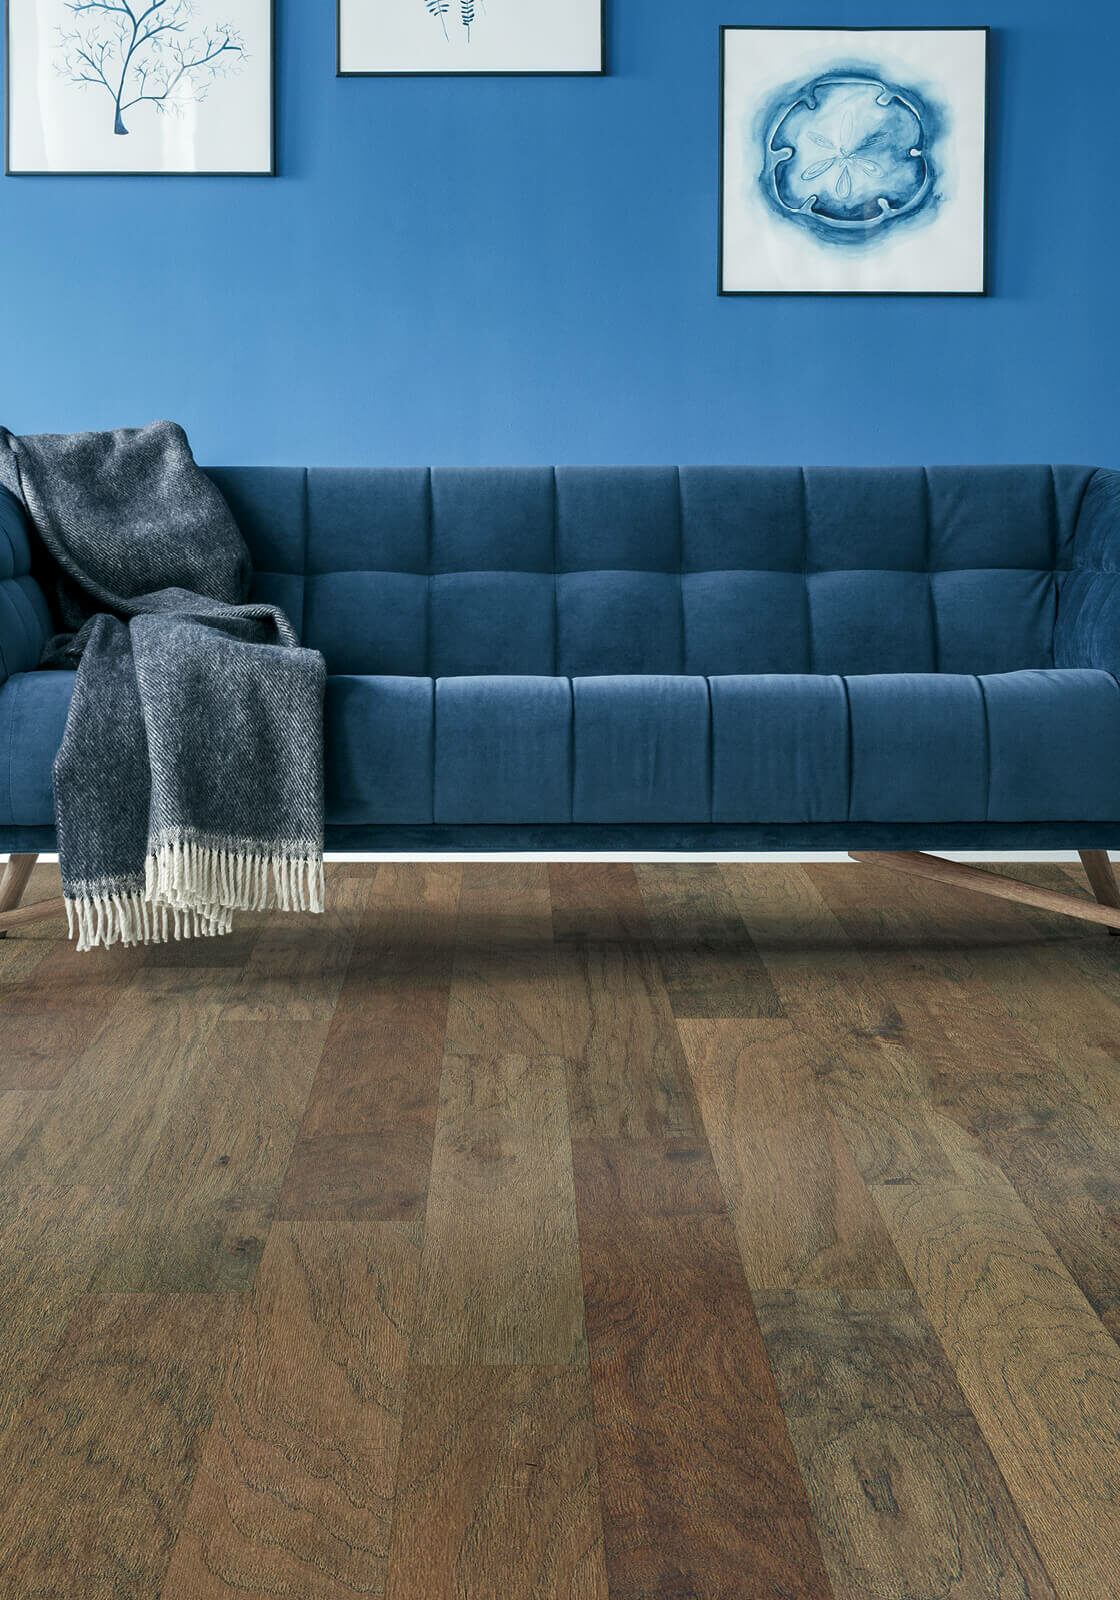 Pantheon waterproof vinyl plank | The Flooring Place